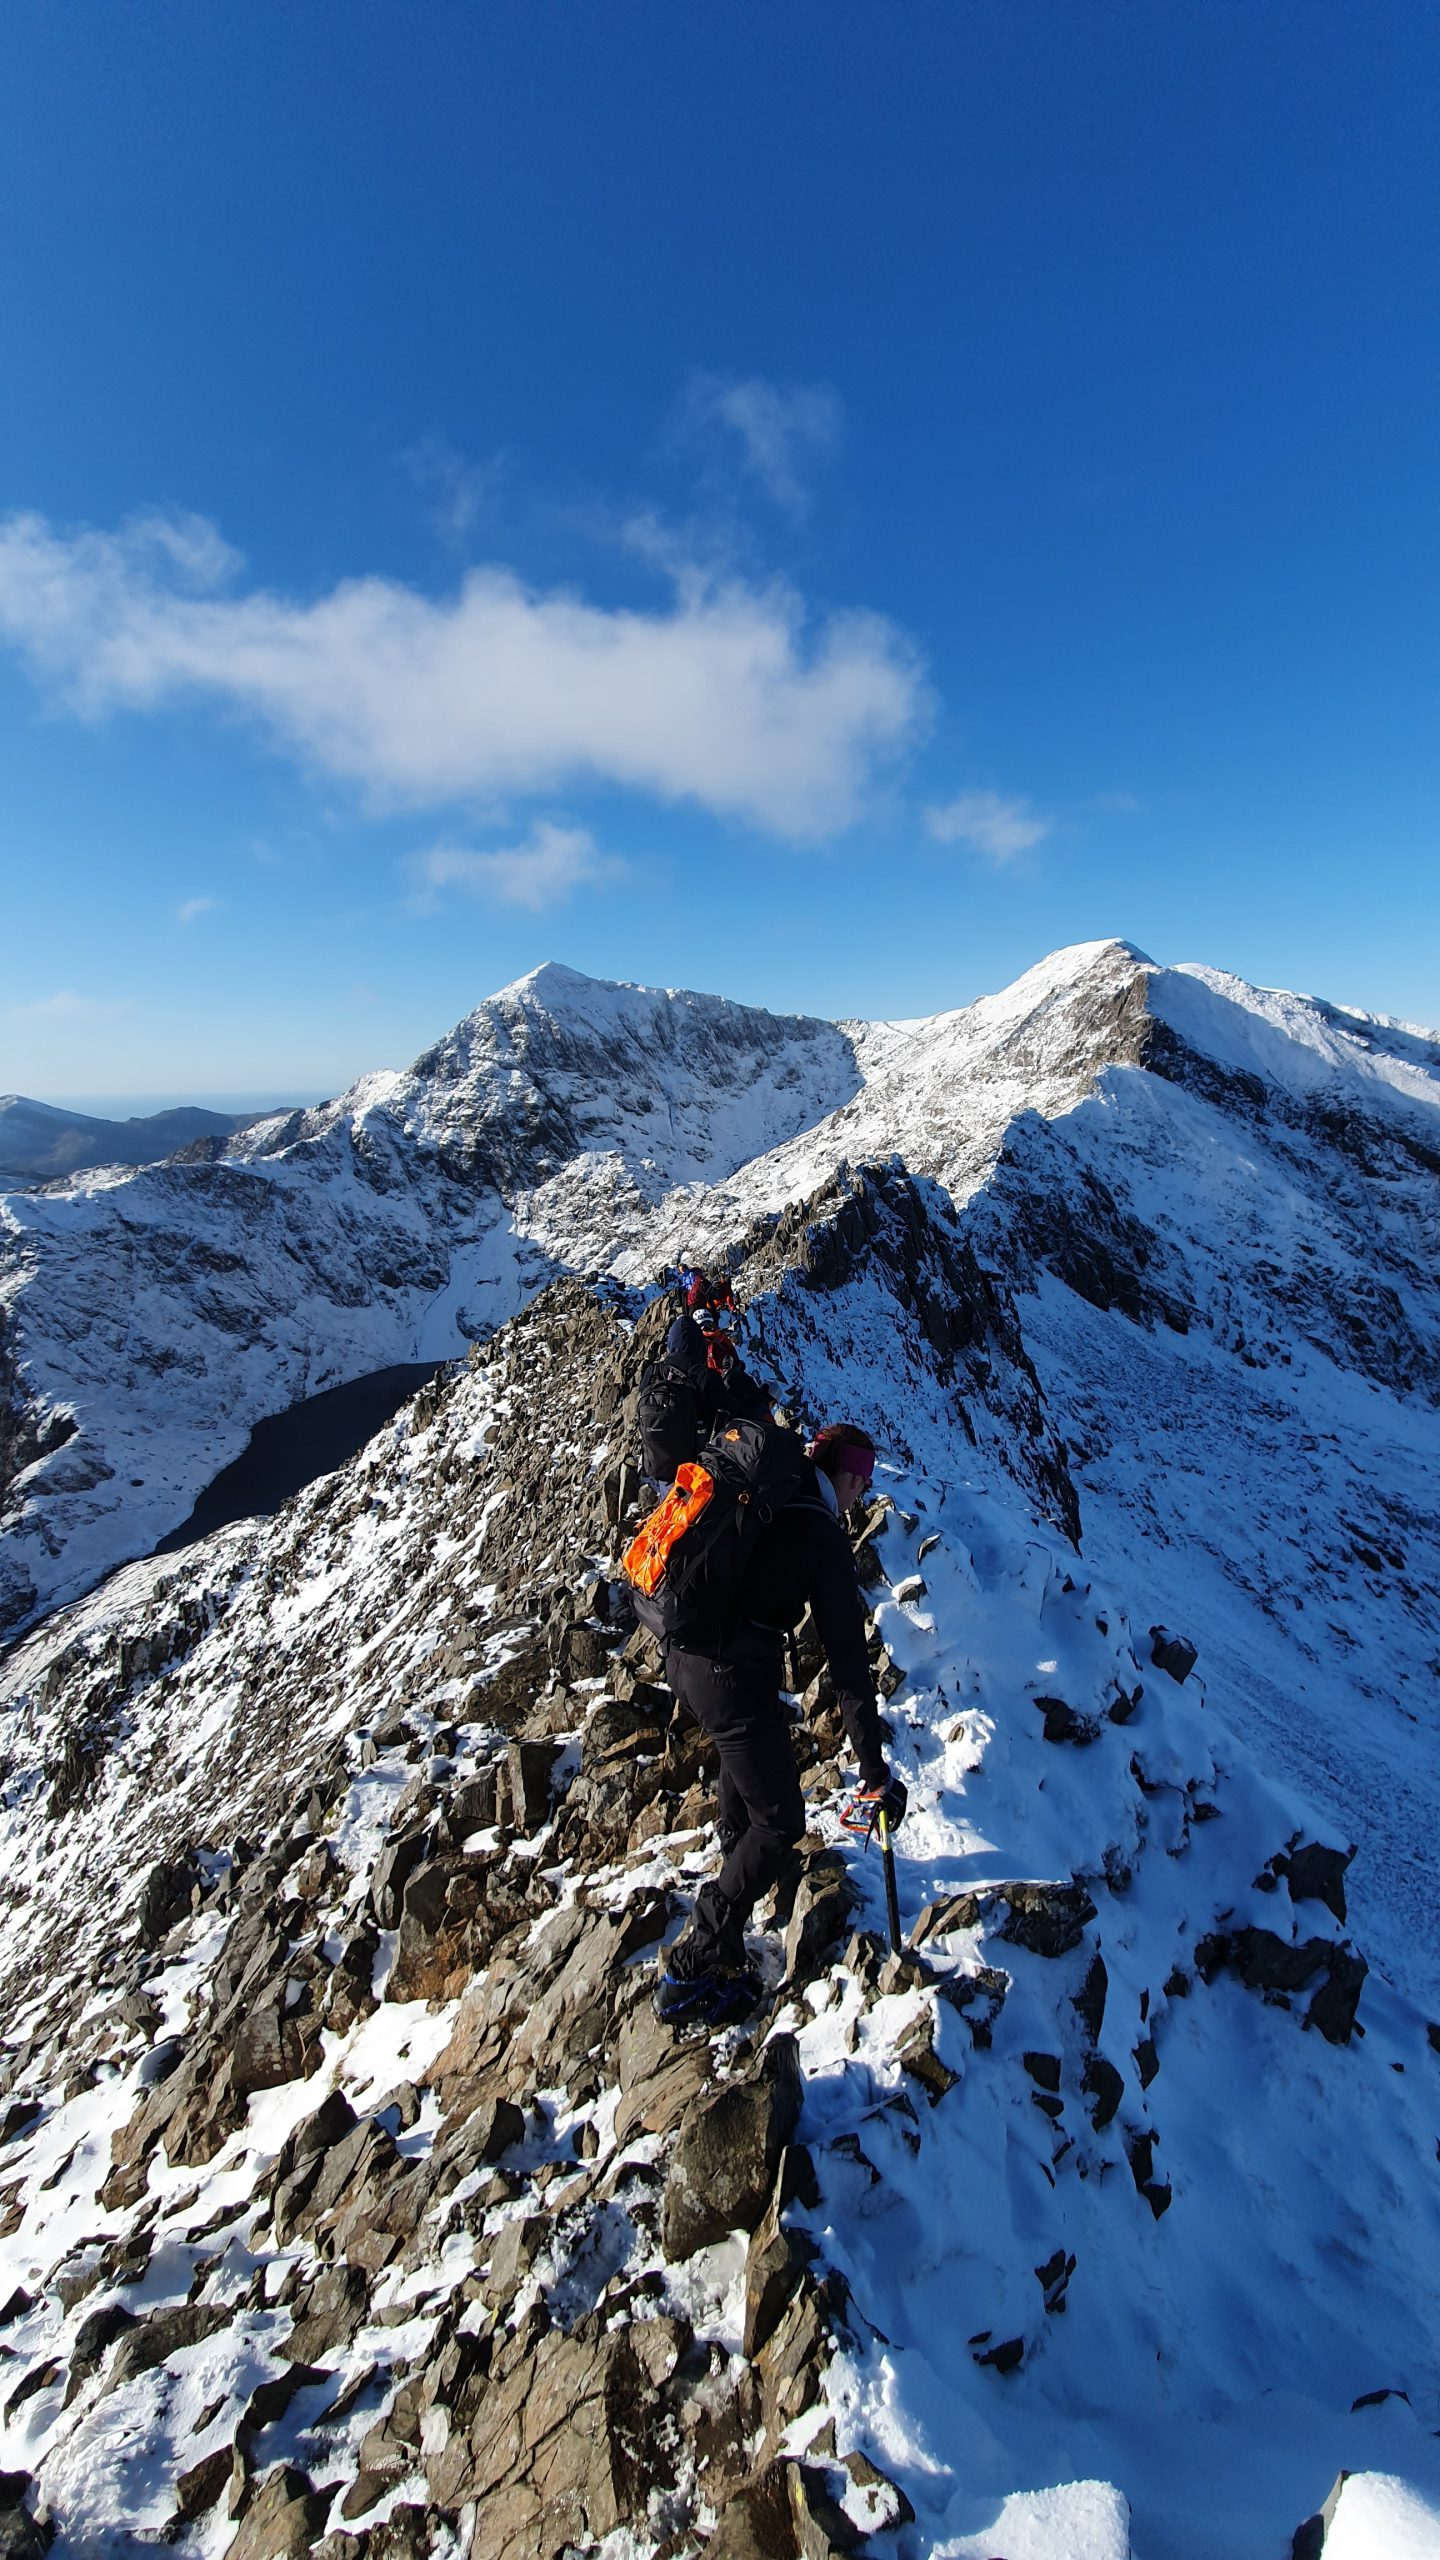 2020/21: Ben Lairig with Covid-19